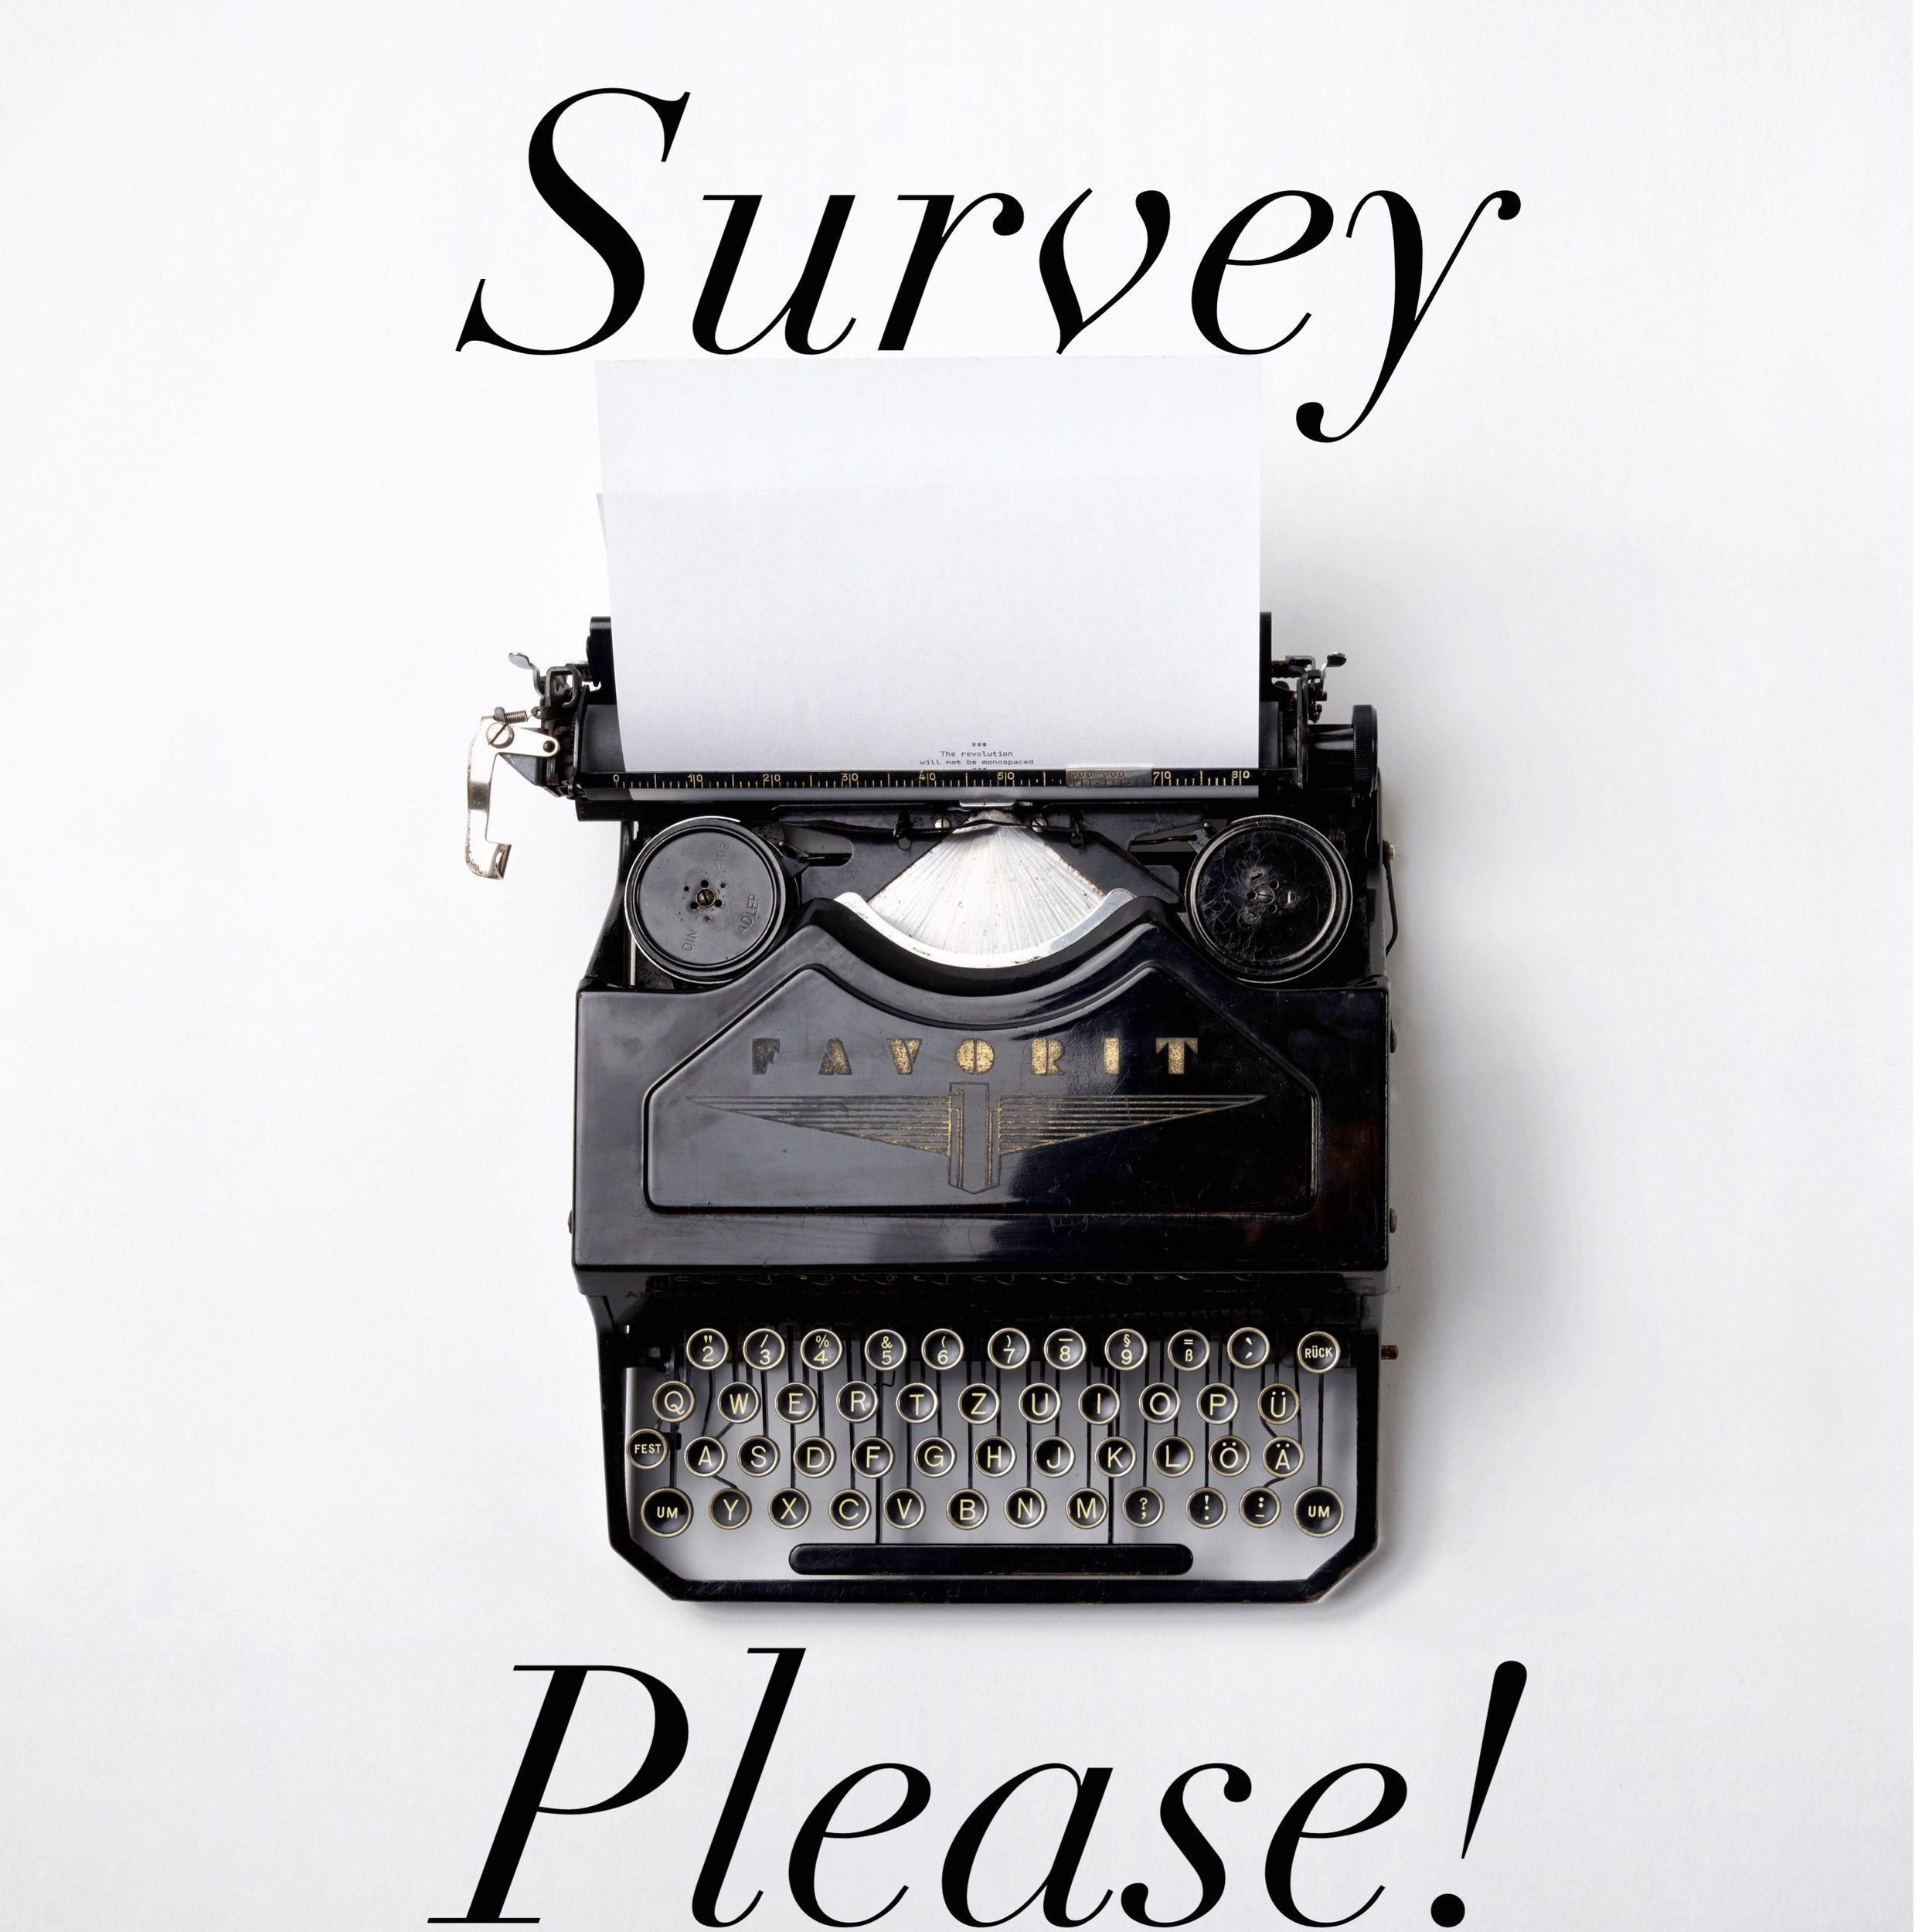 Survey Please!